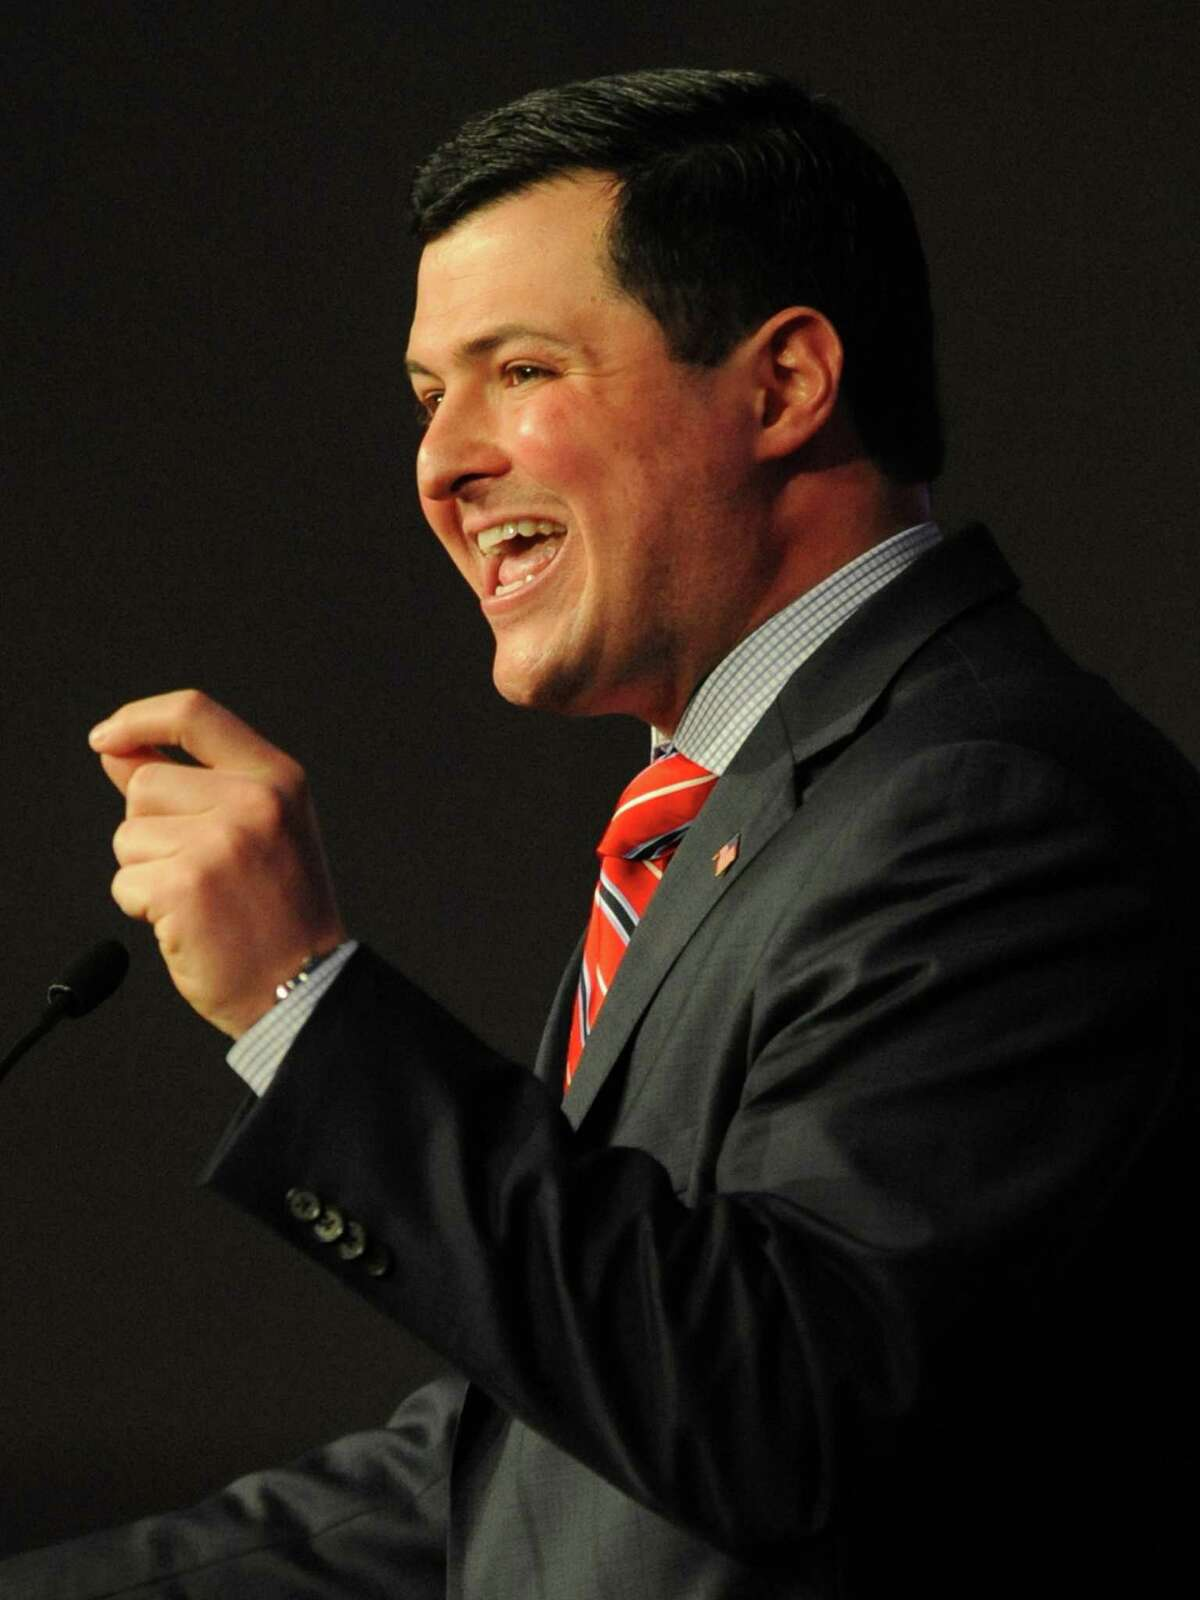 Tim Herbst speaks after being selected as the Republican State Treasurer candidate at the Connecticut Republican Convention at the Mohegan Sun Uncas Ballroom in Uncasville, Conn. Saturday, May 17, 2014. Herbst, currently the First Selectman of Trumbull, beat candidate Bob Eick and will face incumbent Democrat Treasurer Denise Nappier.